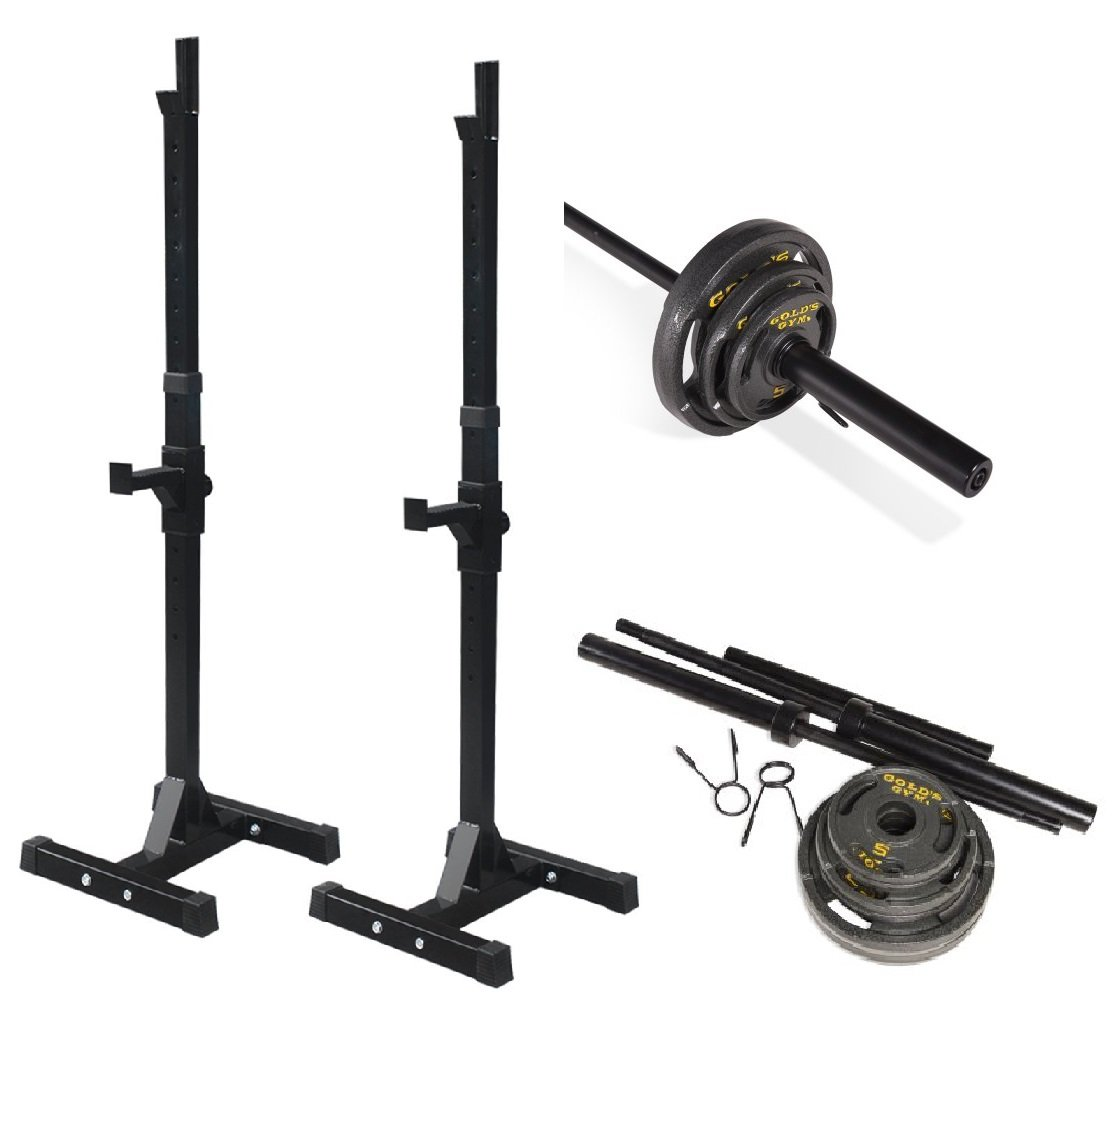 Bundle Includes: Adjustable Rack For Free Bench Press And Squats, Olympic Weight Set, 110 lbs